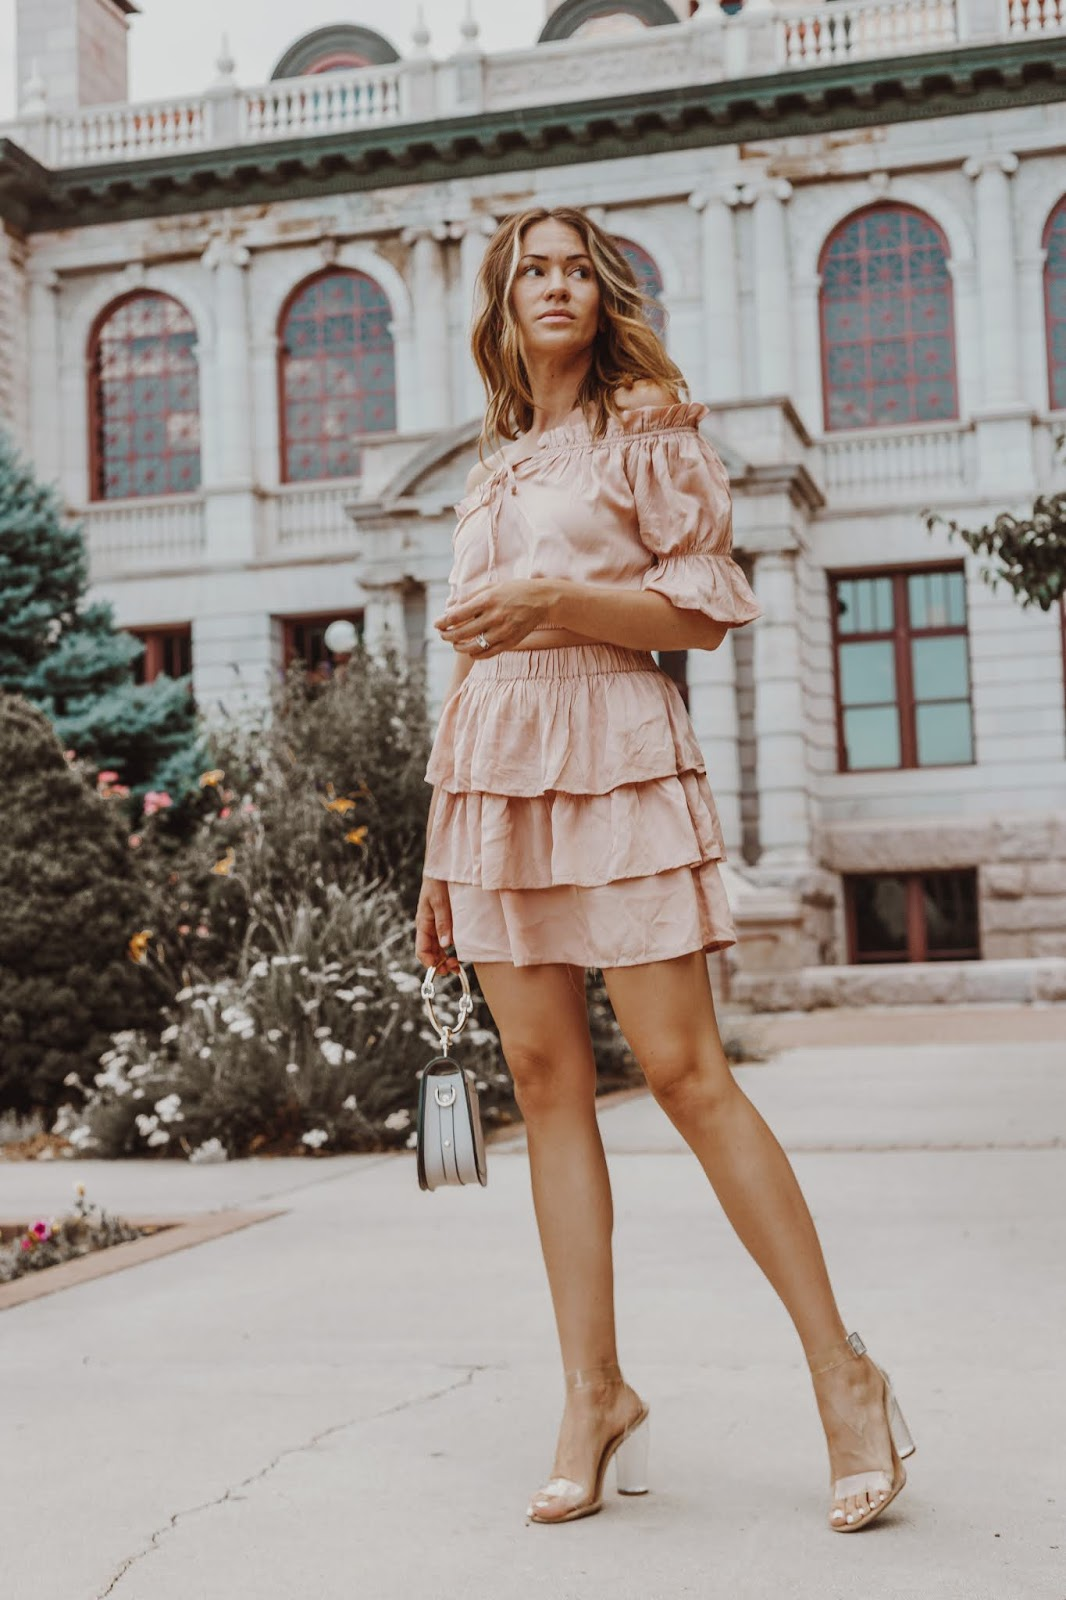 Popular Colorado fashion blogger, Leah Behr